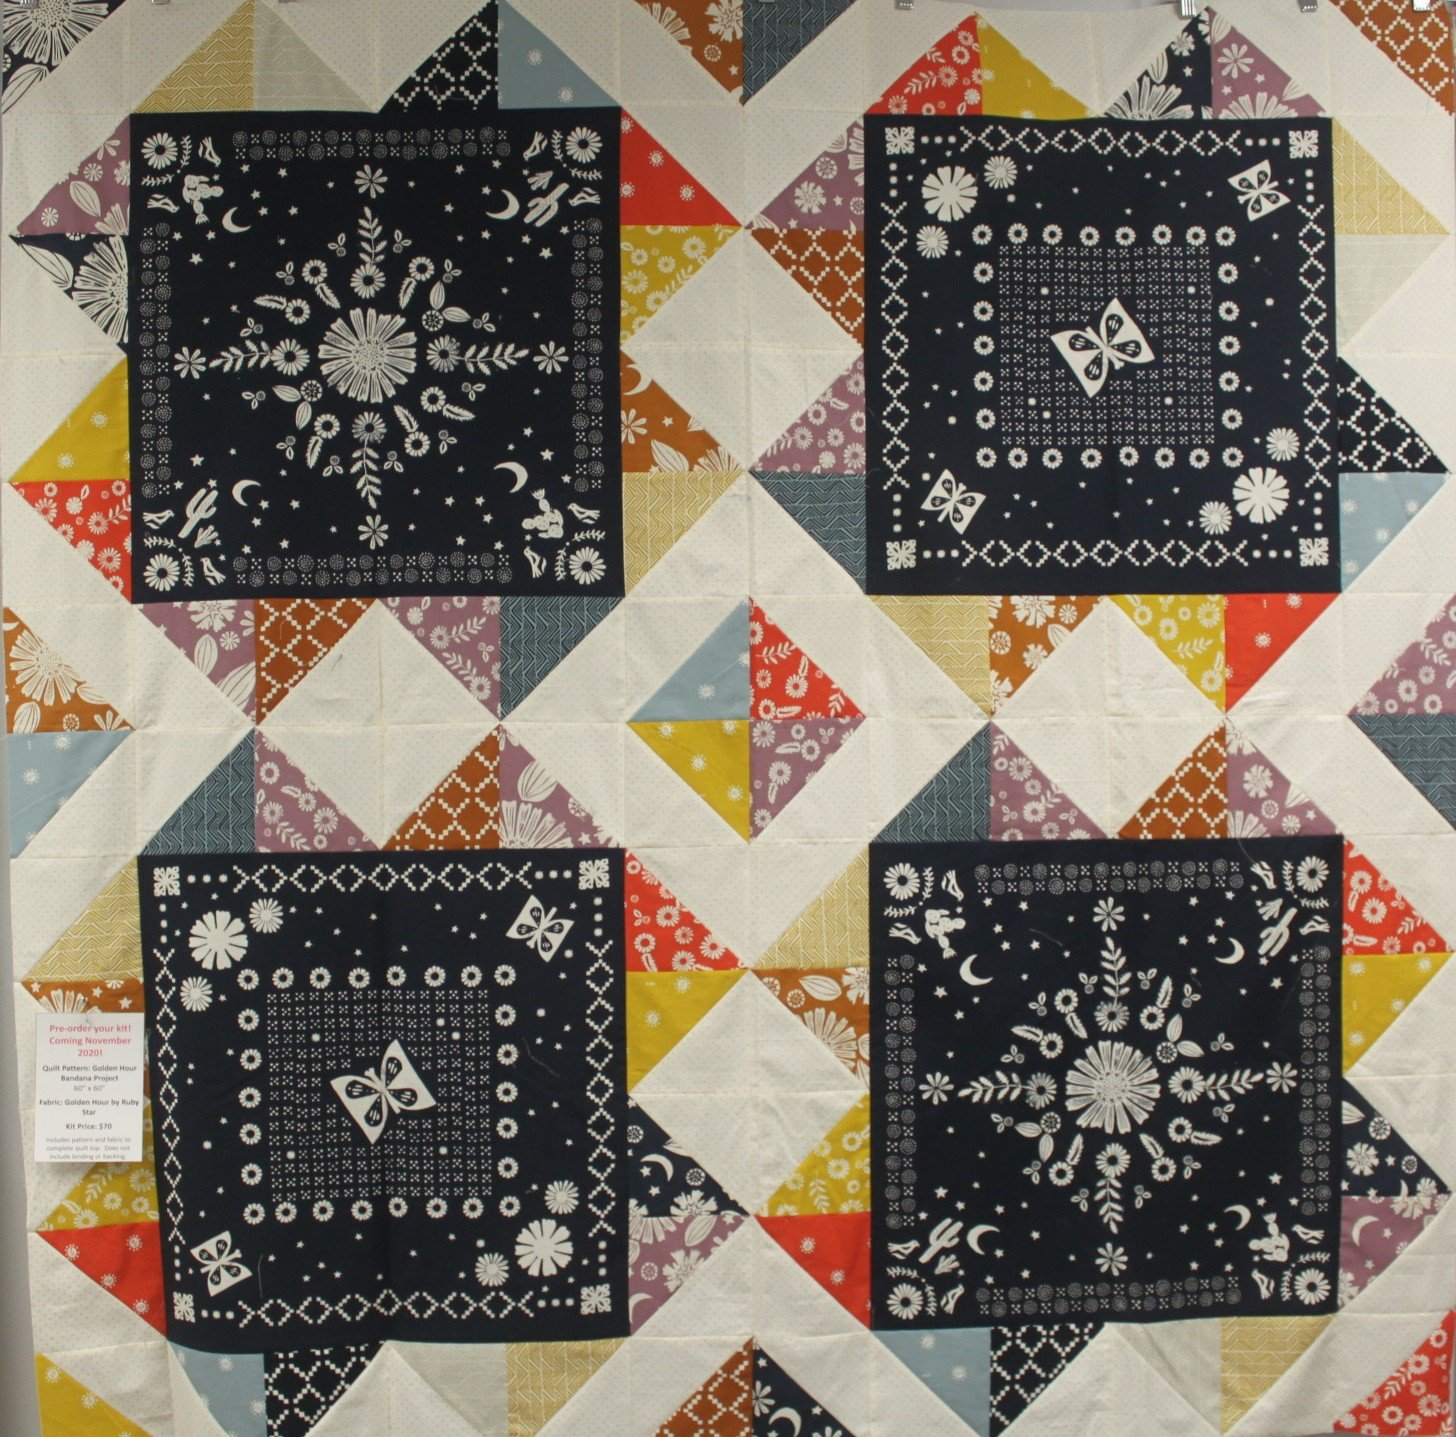 Golden Hour Bandana Quilt Kit Pre-order